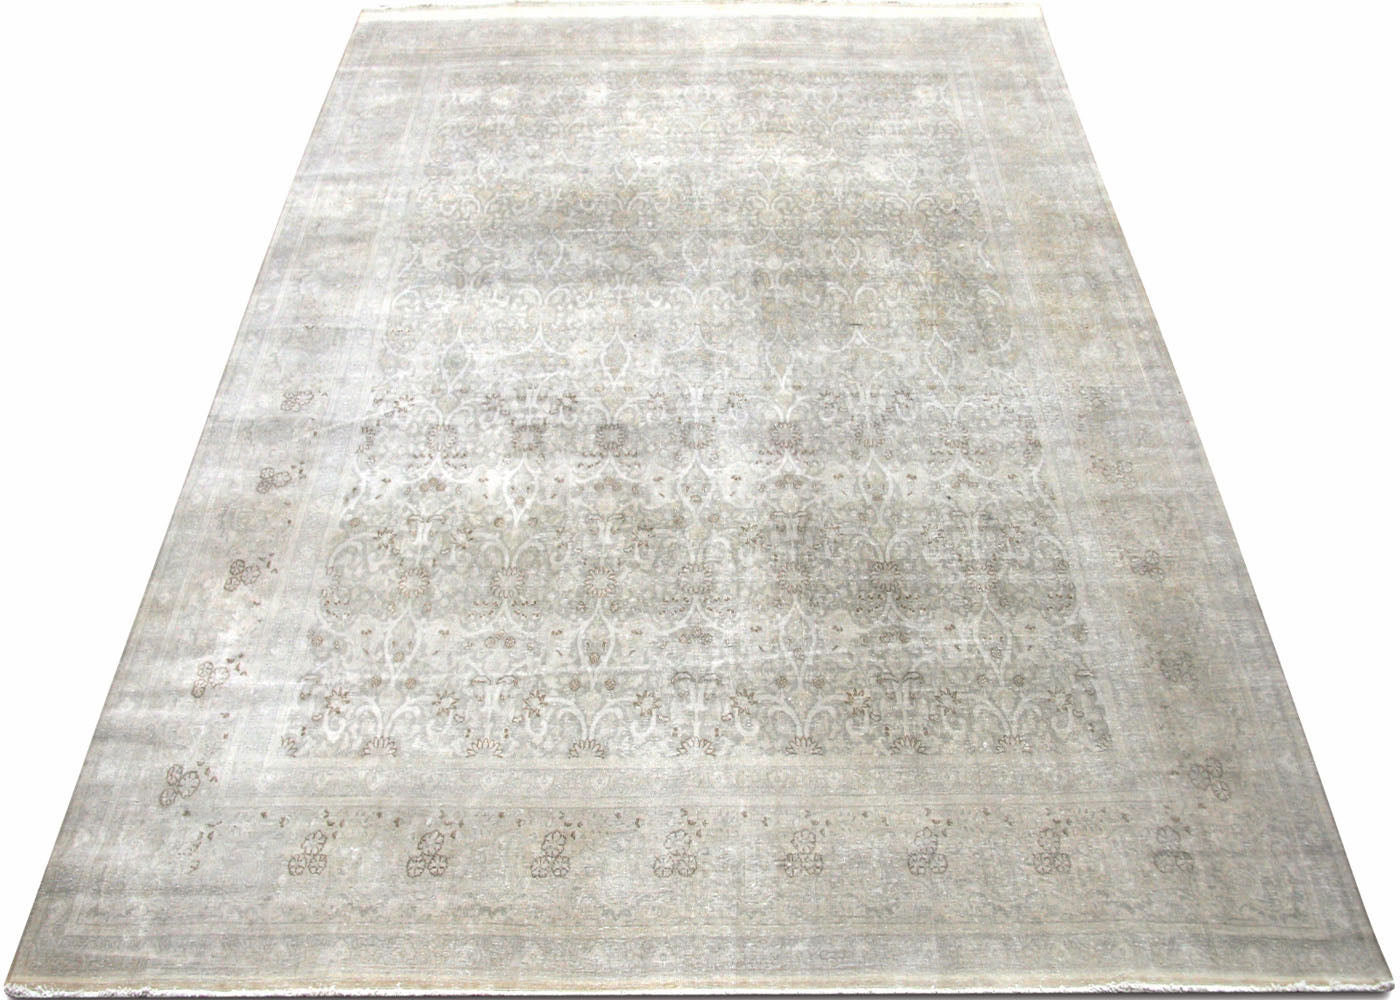 "Semi Antique Persian Tabriz Carpet - 9'11"" x 13'1"""